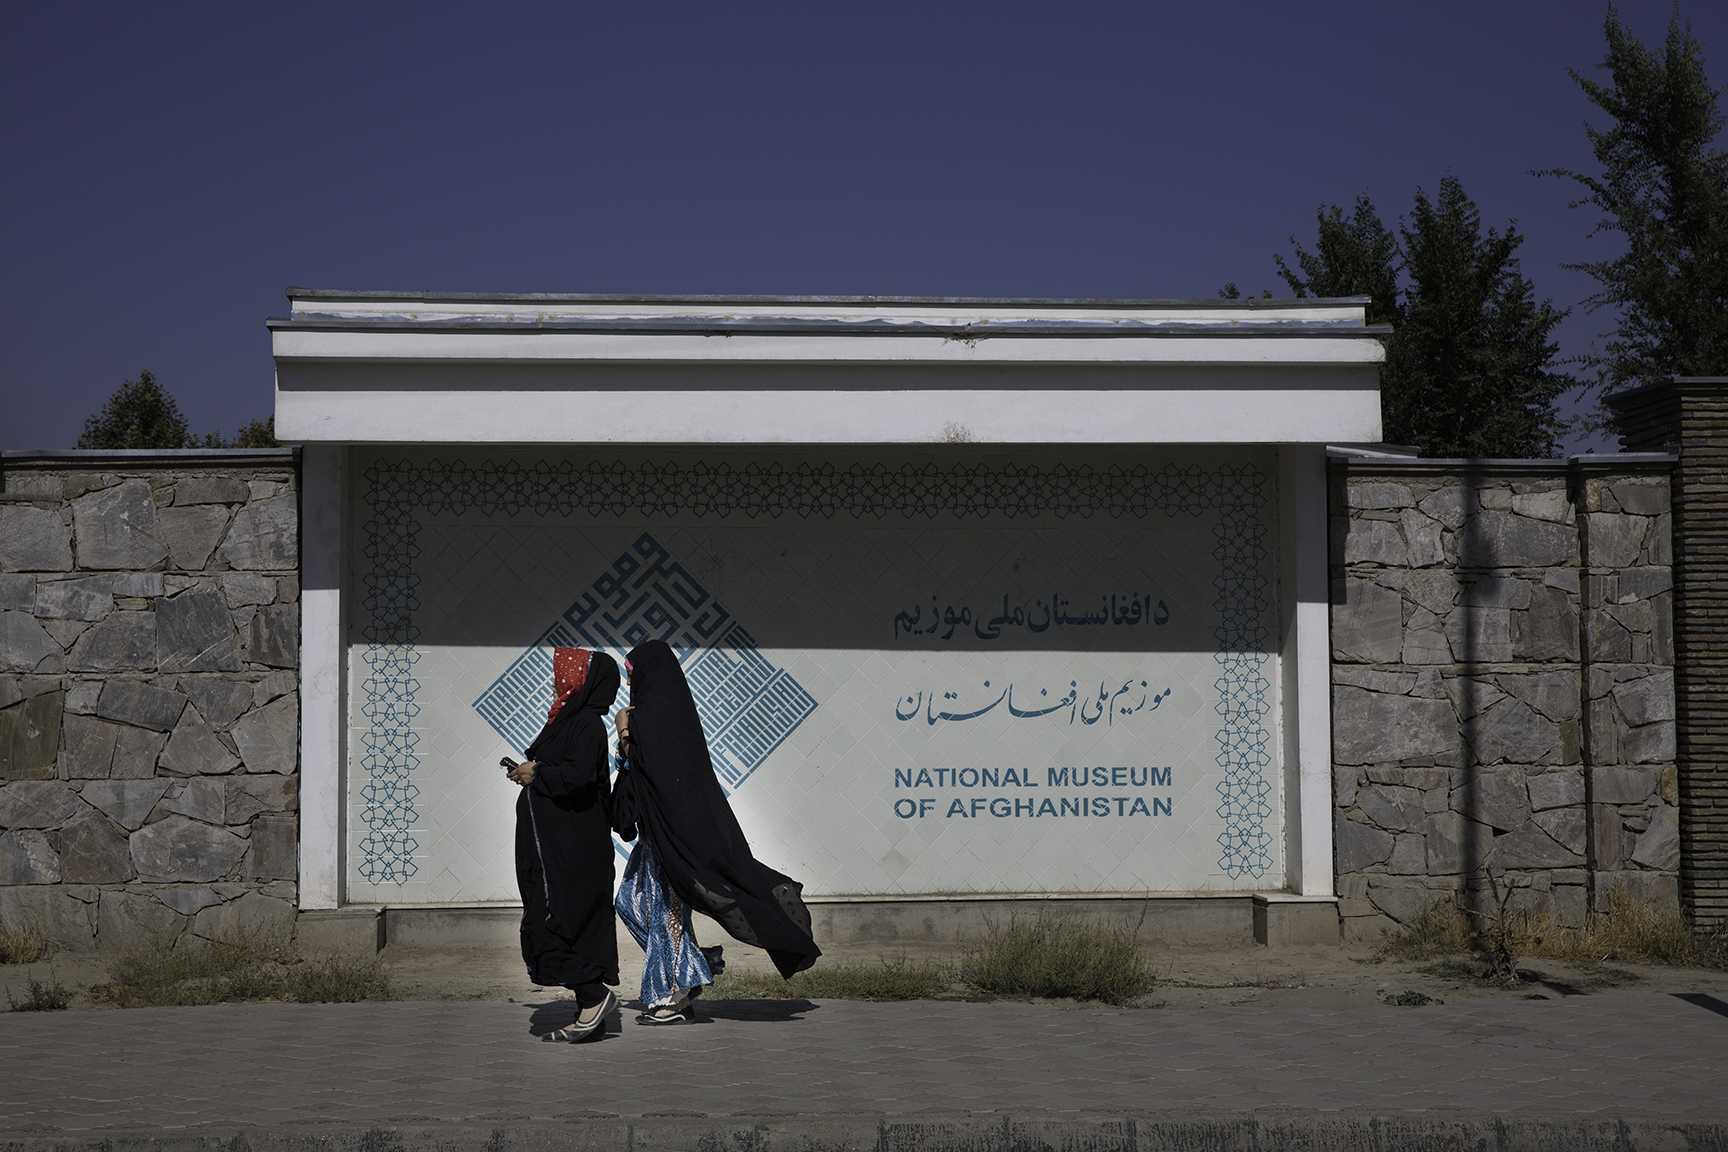 Two women pass by a sign for the National Museum of Afghanistan located near the visitors' center in the museum's garden. The sign is written in Dari, Pashtu, and English.